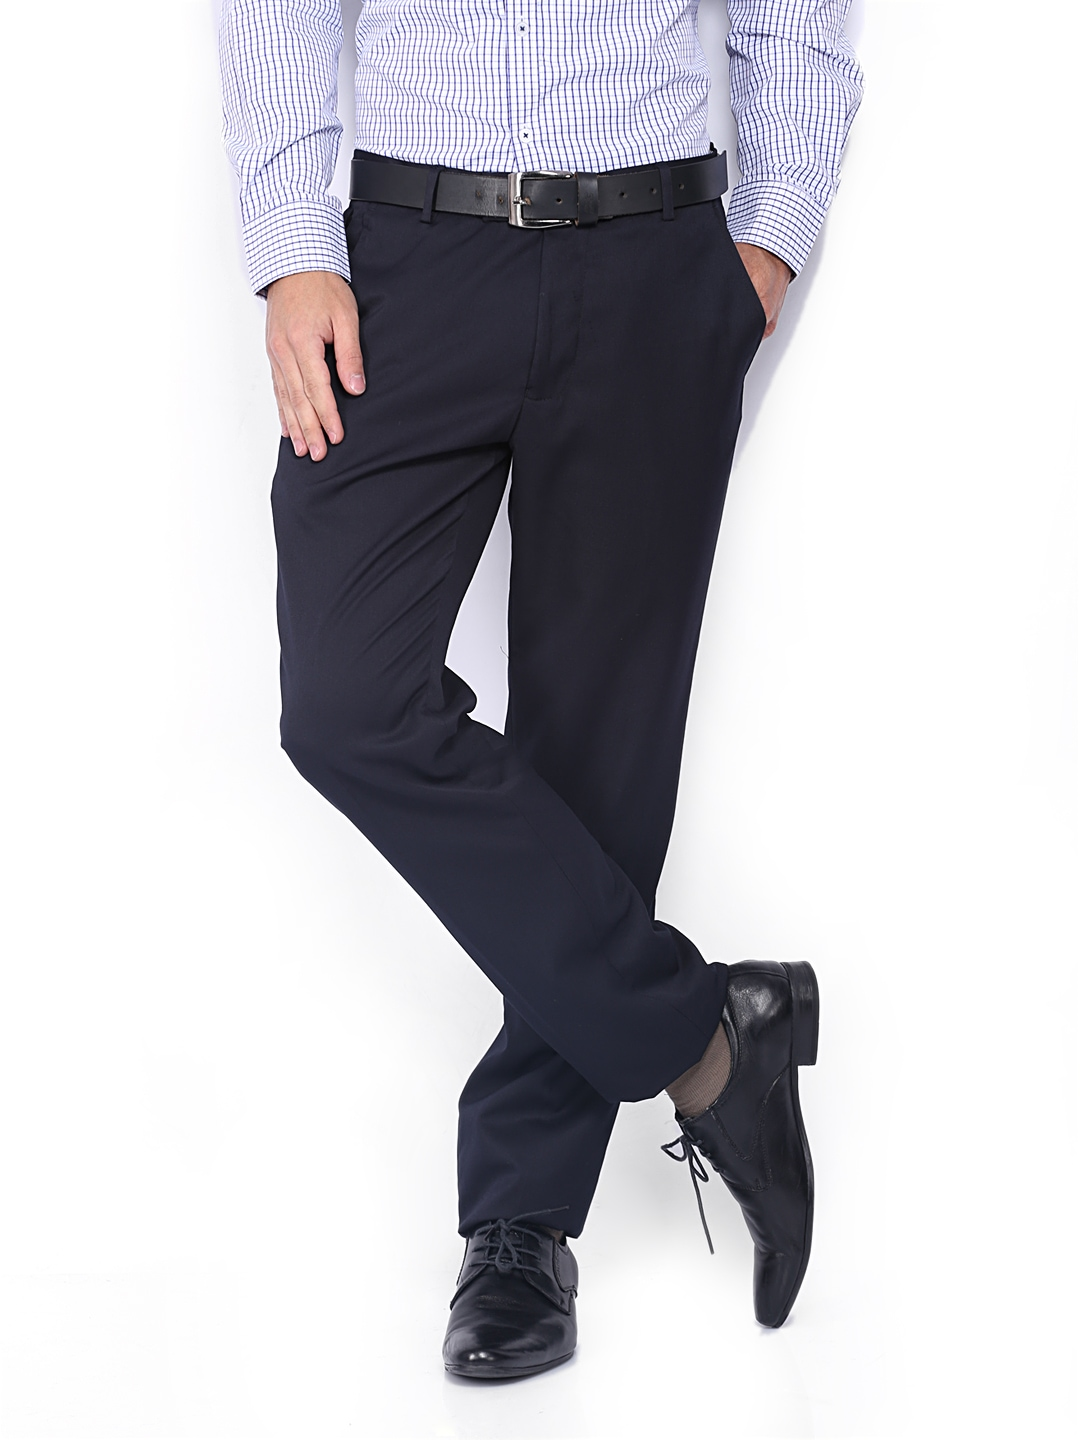 ea6ef50772e Buy Black Coffee Men Black Regular Slim Fit Formal Trousers (multicolor)  1353814 for men online in india on Myntra at Yebhi.com